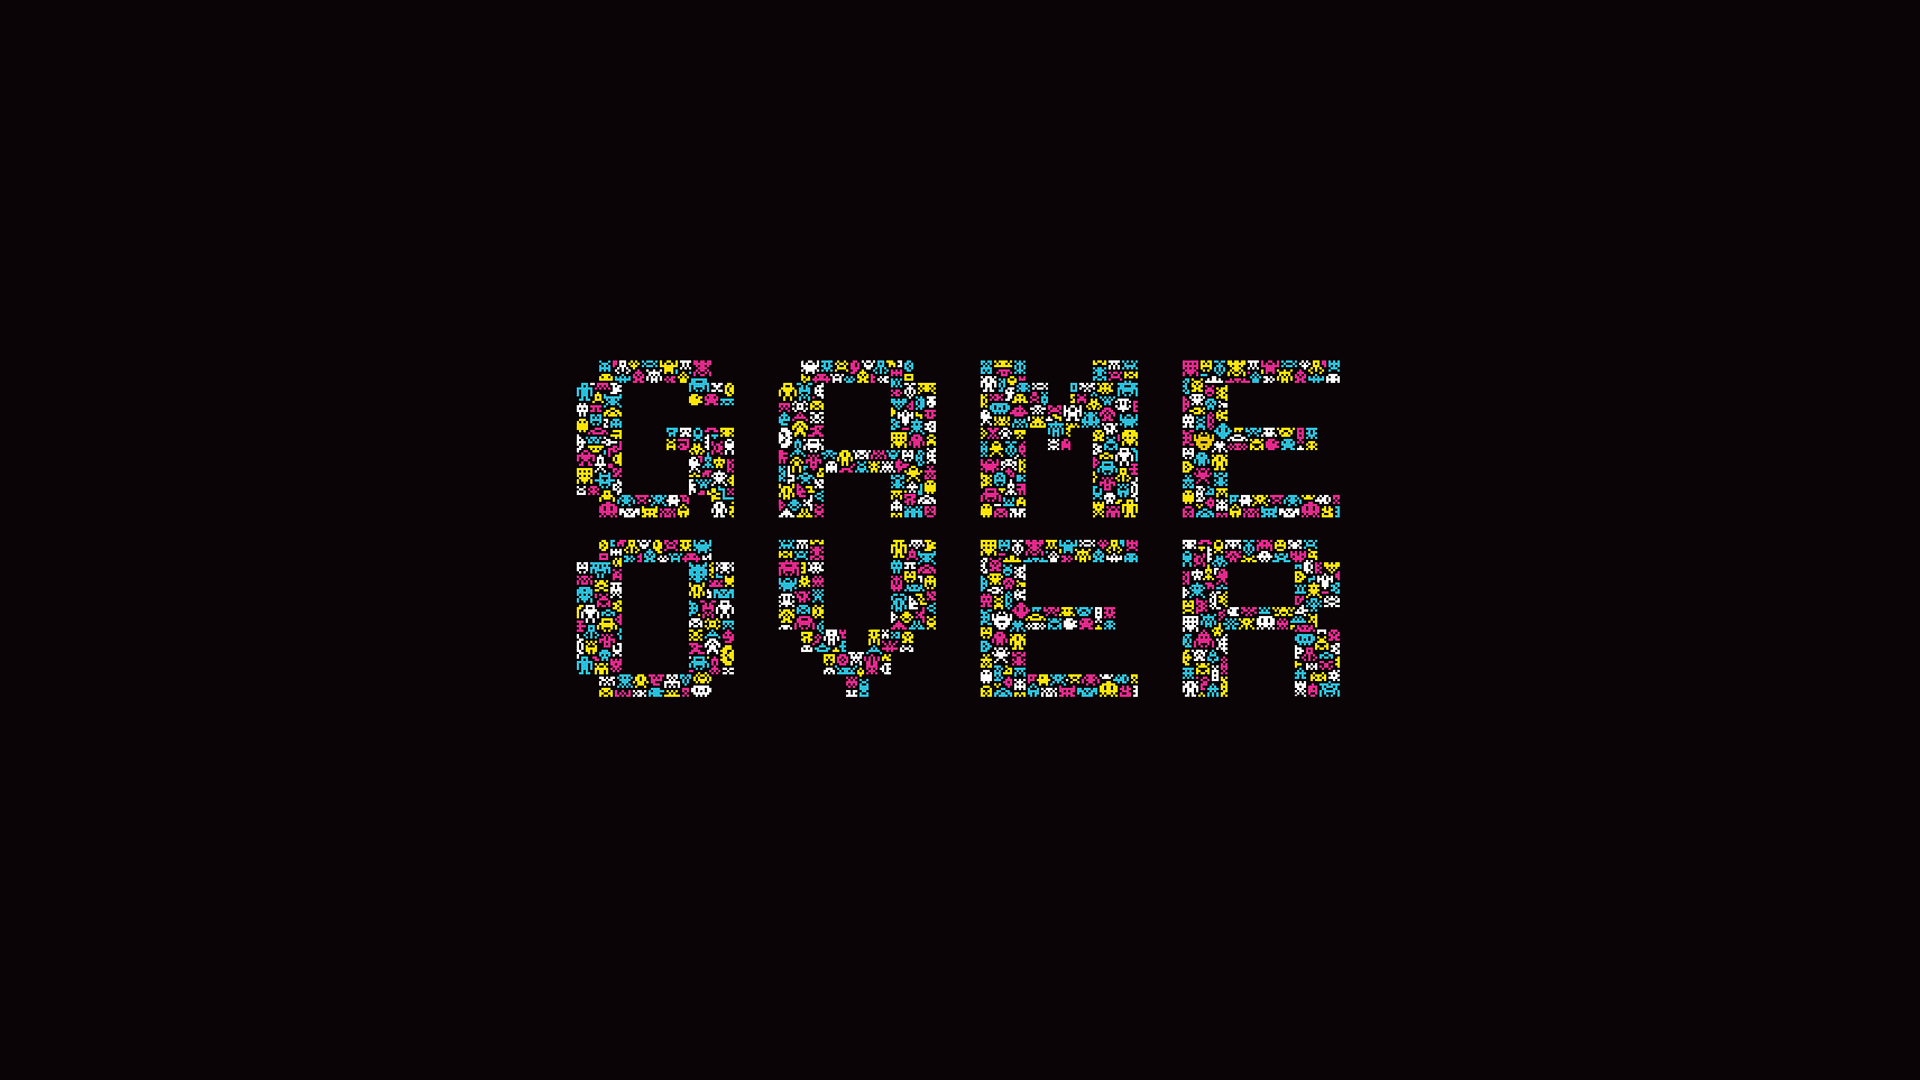 Game Over Windows 10 Wallpaper Games Hd 1920x1080 Wallpapers